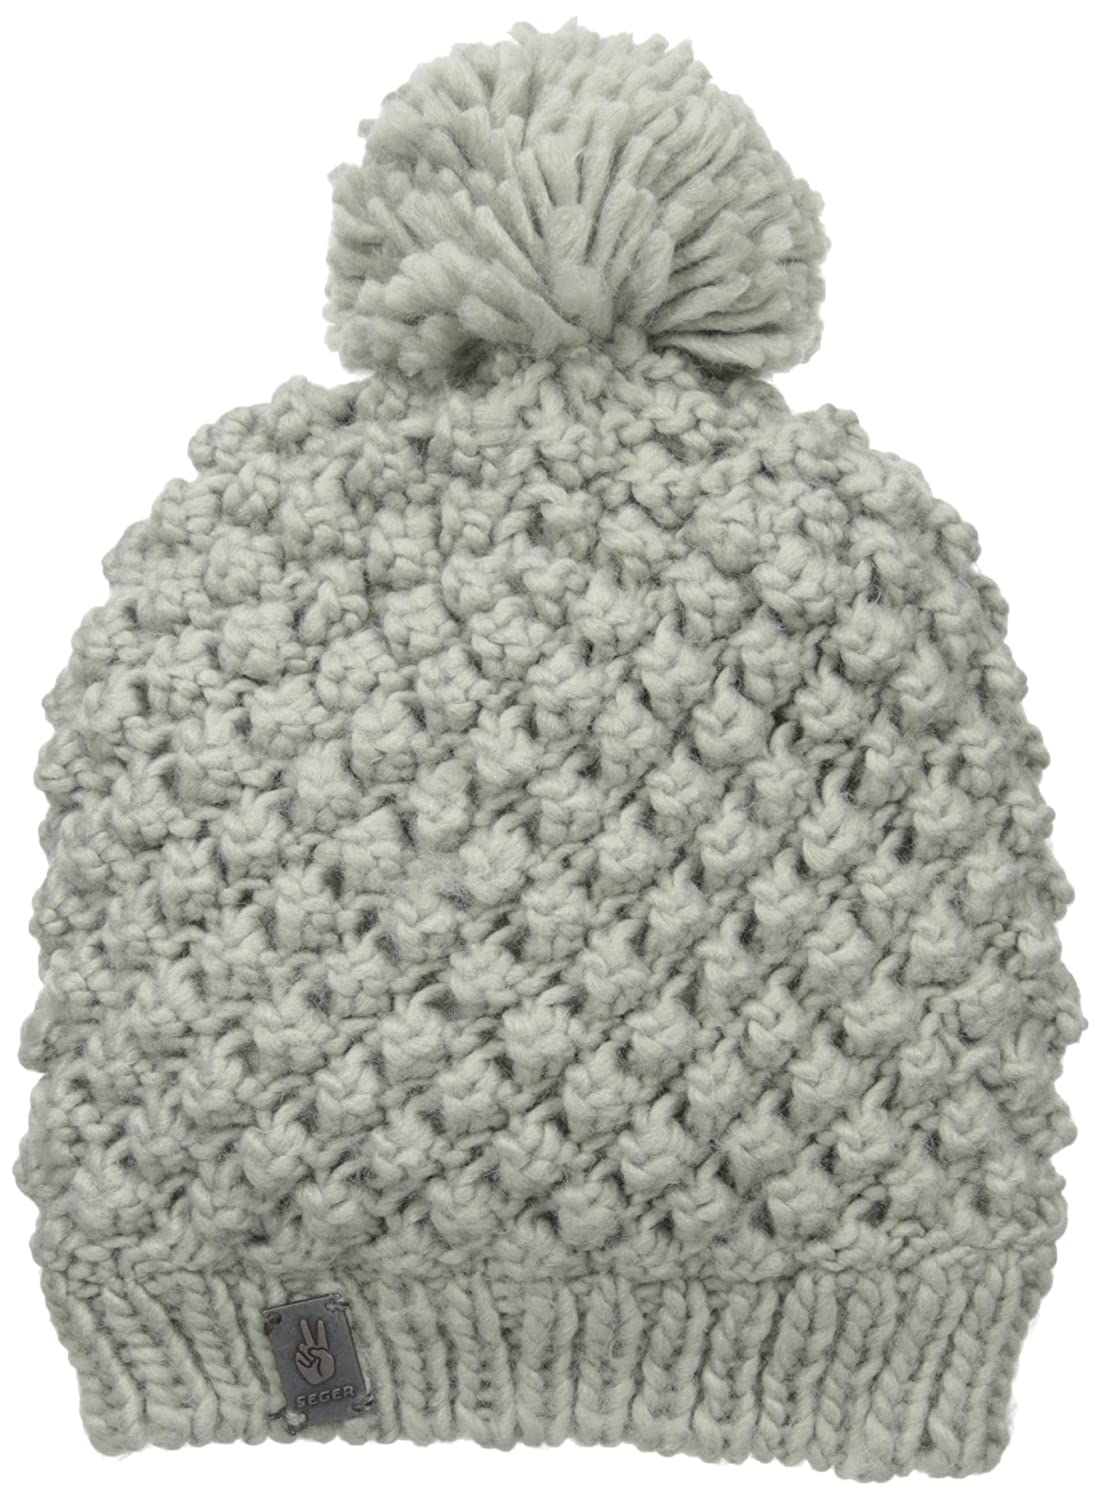 Seger Sports womens Acrylic Beanie With Fleece Lining and Pom-pom Grey One Size SH350